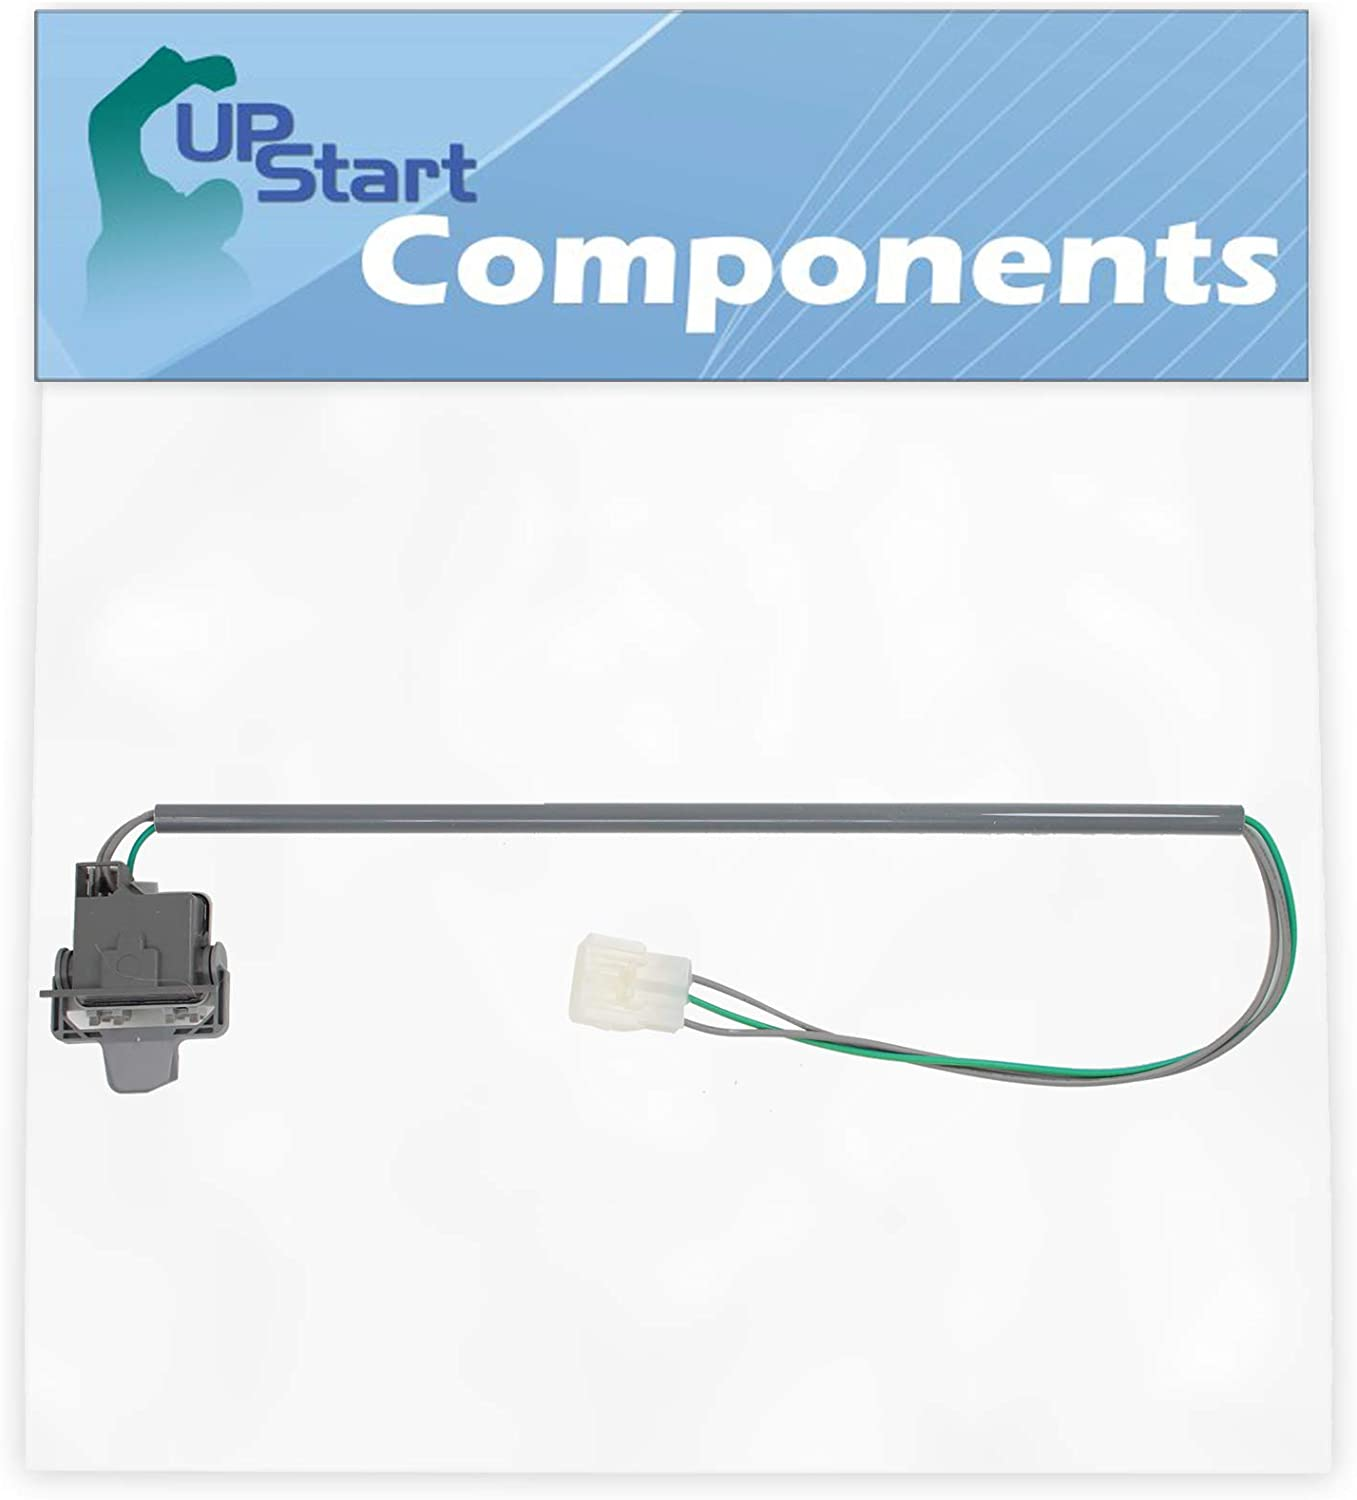 3949247 Washer Lid Switch Replacement for Whirlpool LSR8233JQ0 Washing Machine - Compatible with 3949247V Lid Switch - UpStart Components Brand